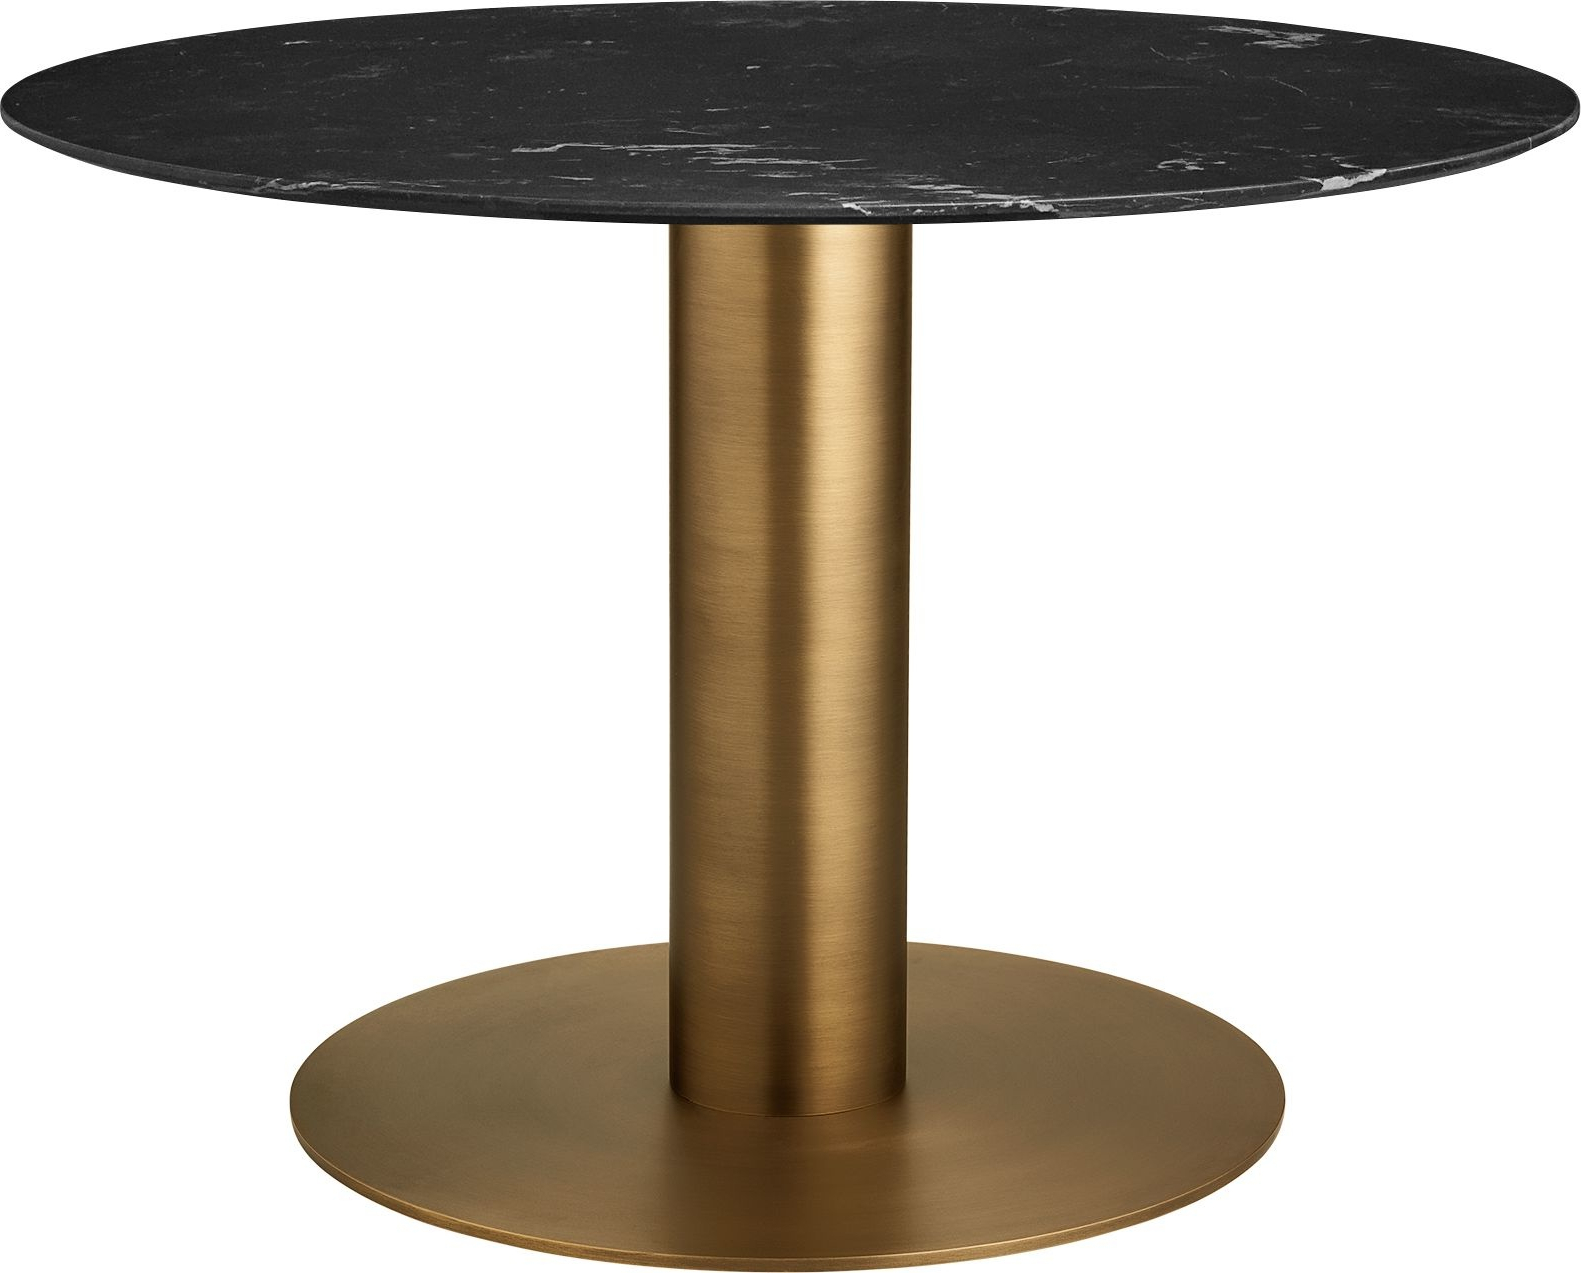 Best And Newest Round 2.0 Dining Table, Antique Brass Base For Dining Tables With Stained Ash Walnut (Gallery 22 of 30)